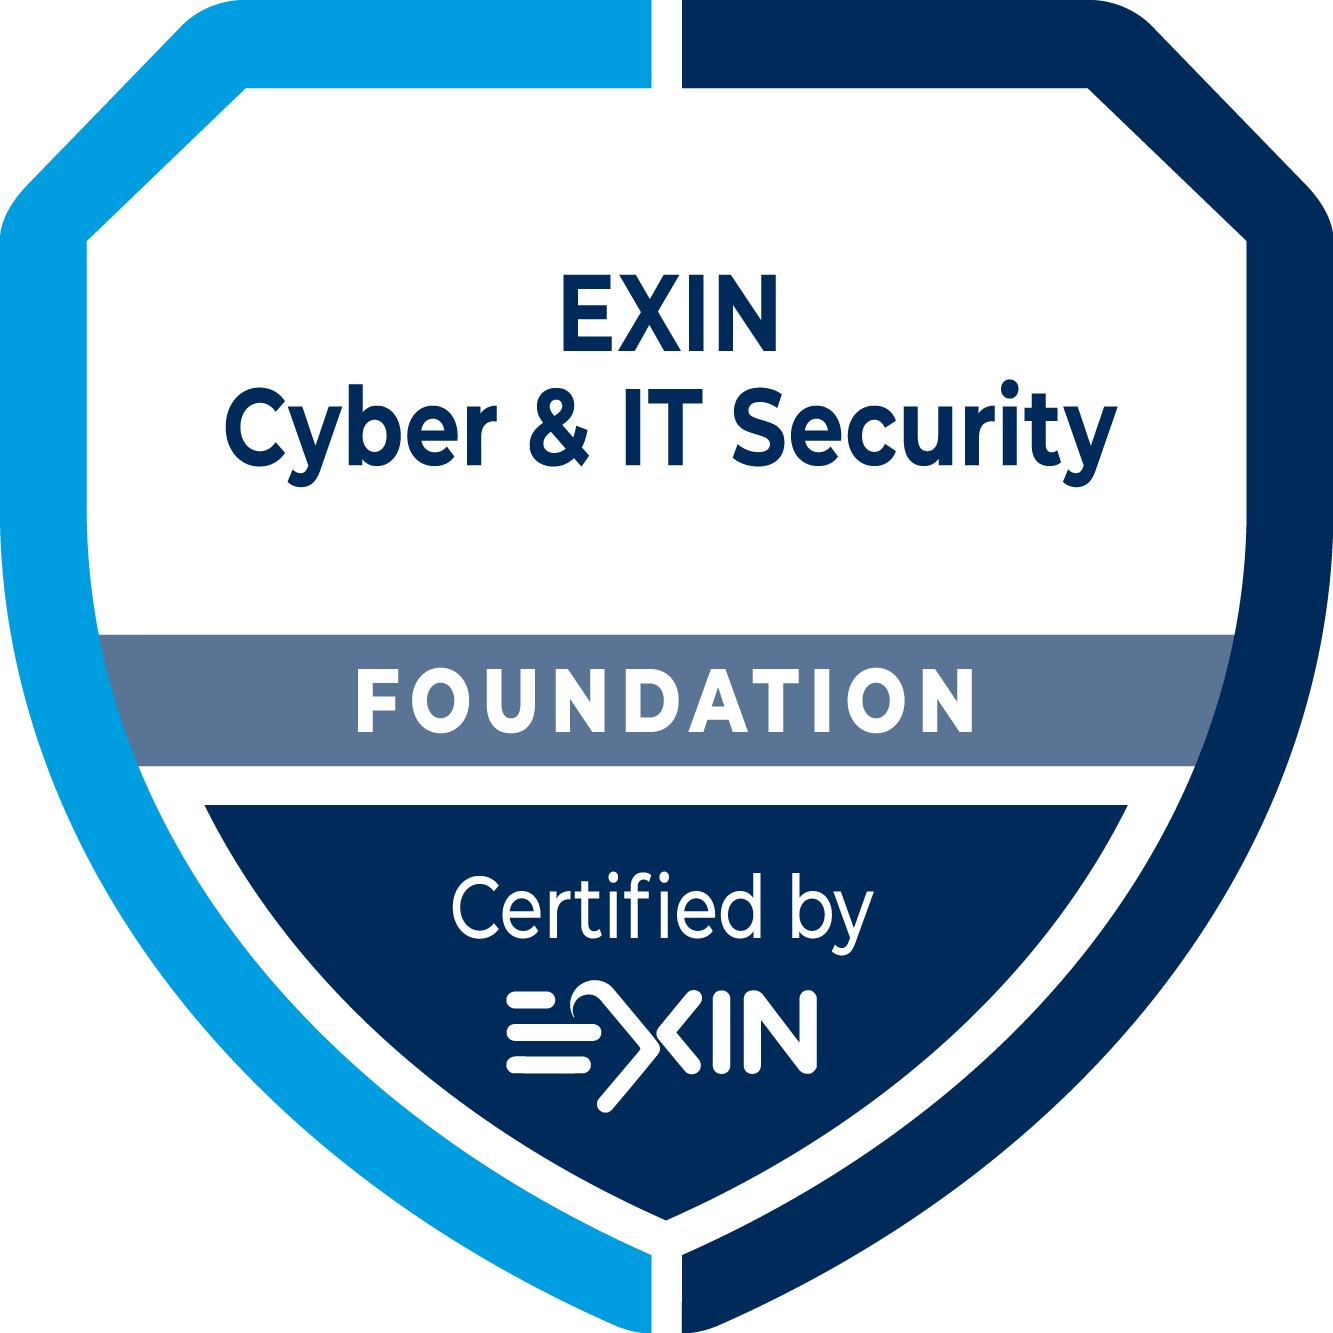 Cyber and IT Security Foundation